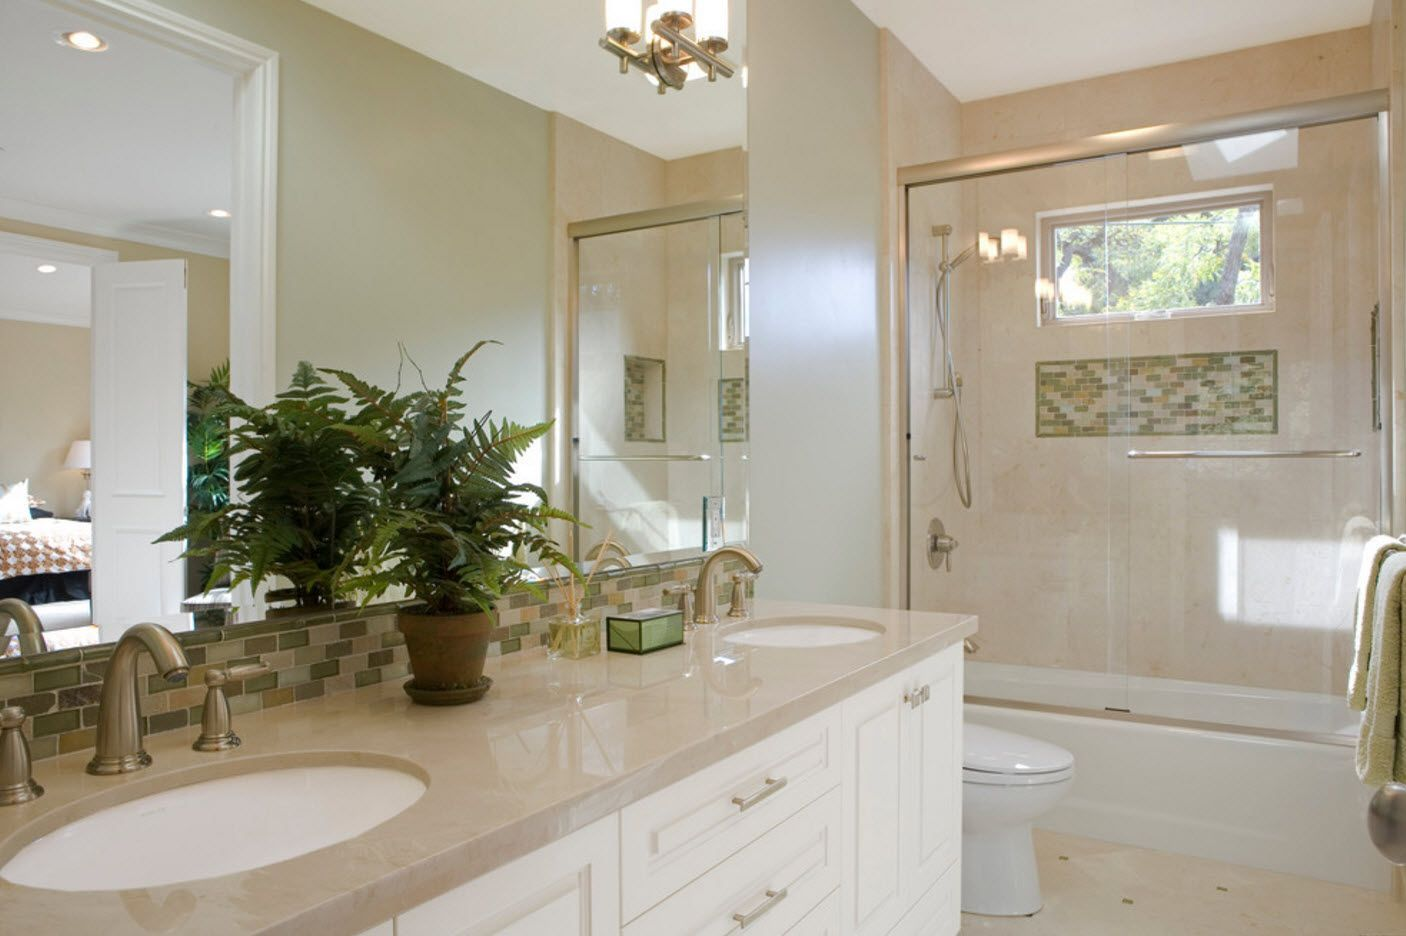 Specklessly white and spirited design of the small bathroom